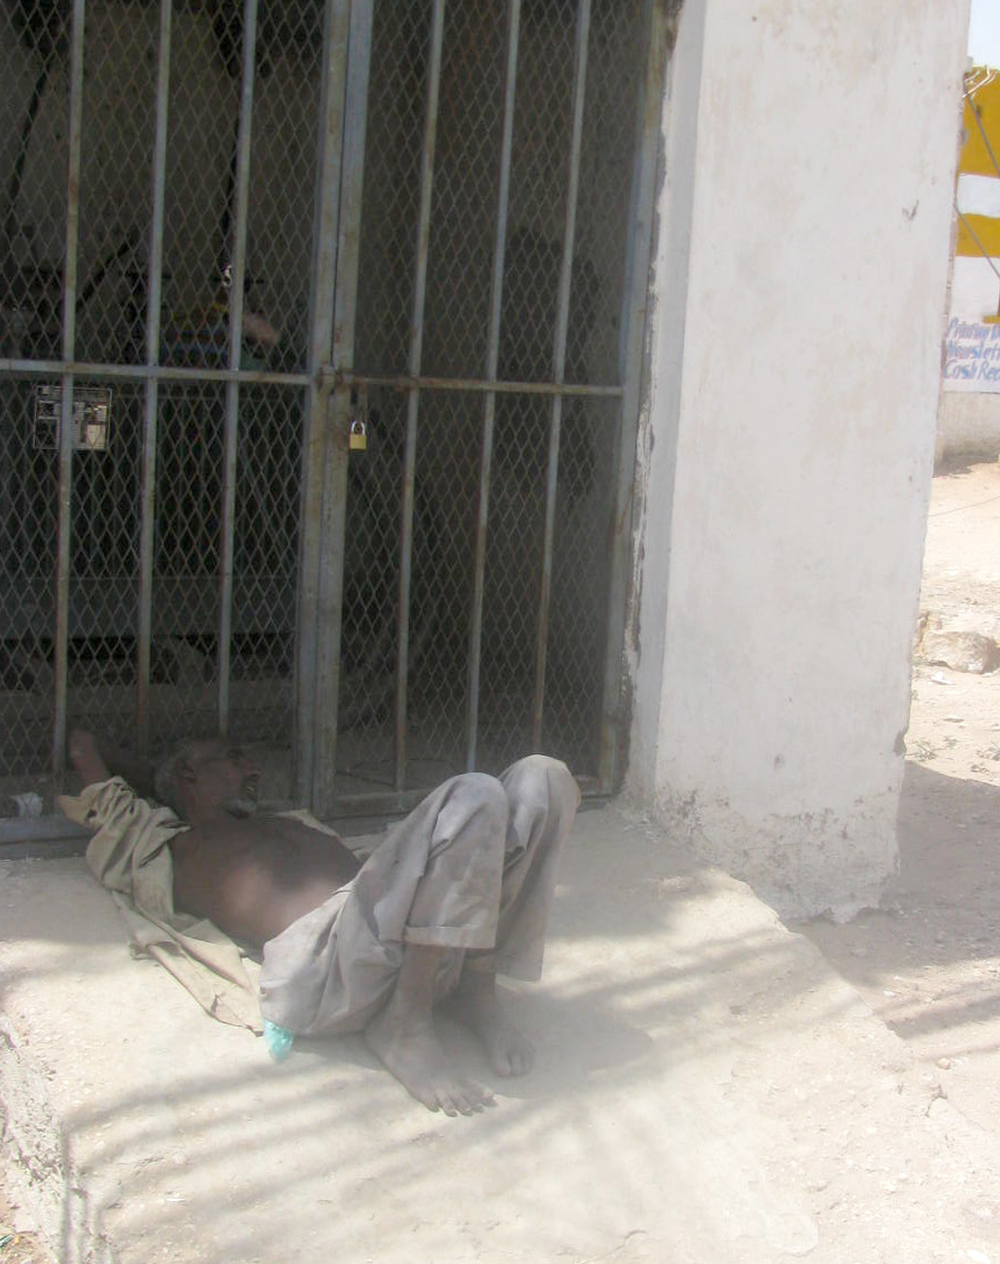 A mentally handicapped man lies on the ground near an electricity poll in Hargeisa: Health officials have expressed concern over the rise in mental health challenges in the region